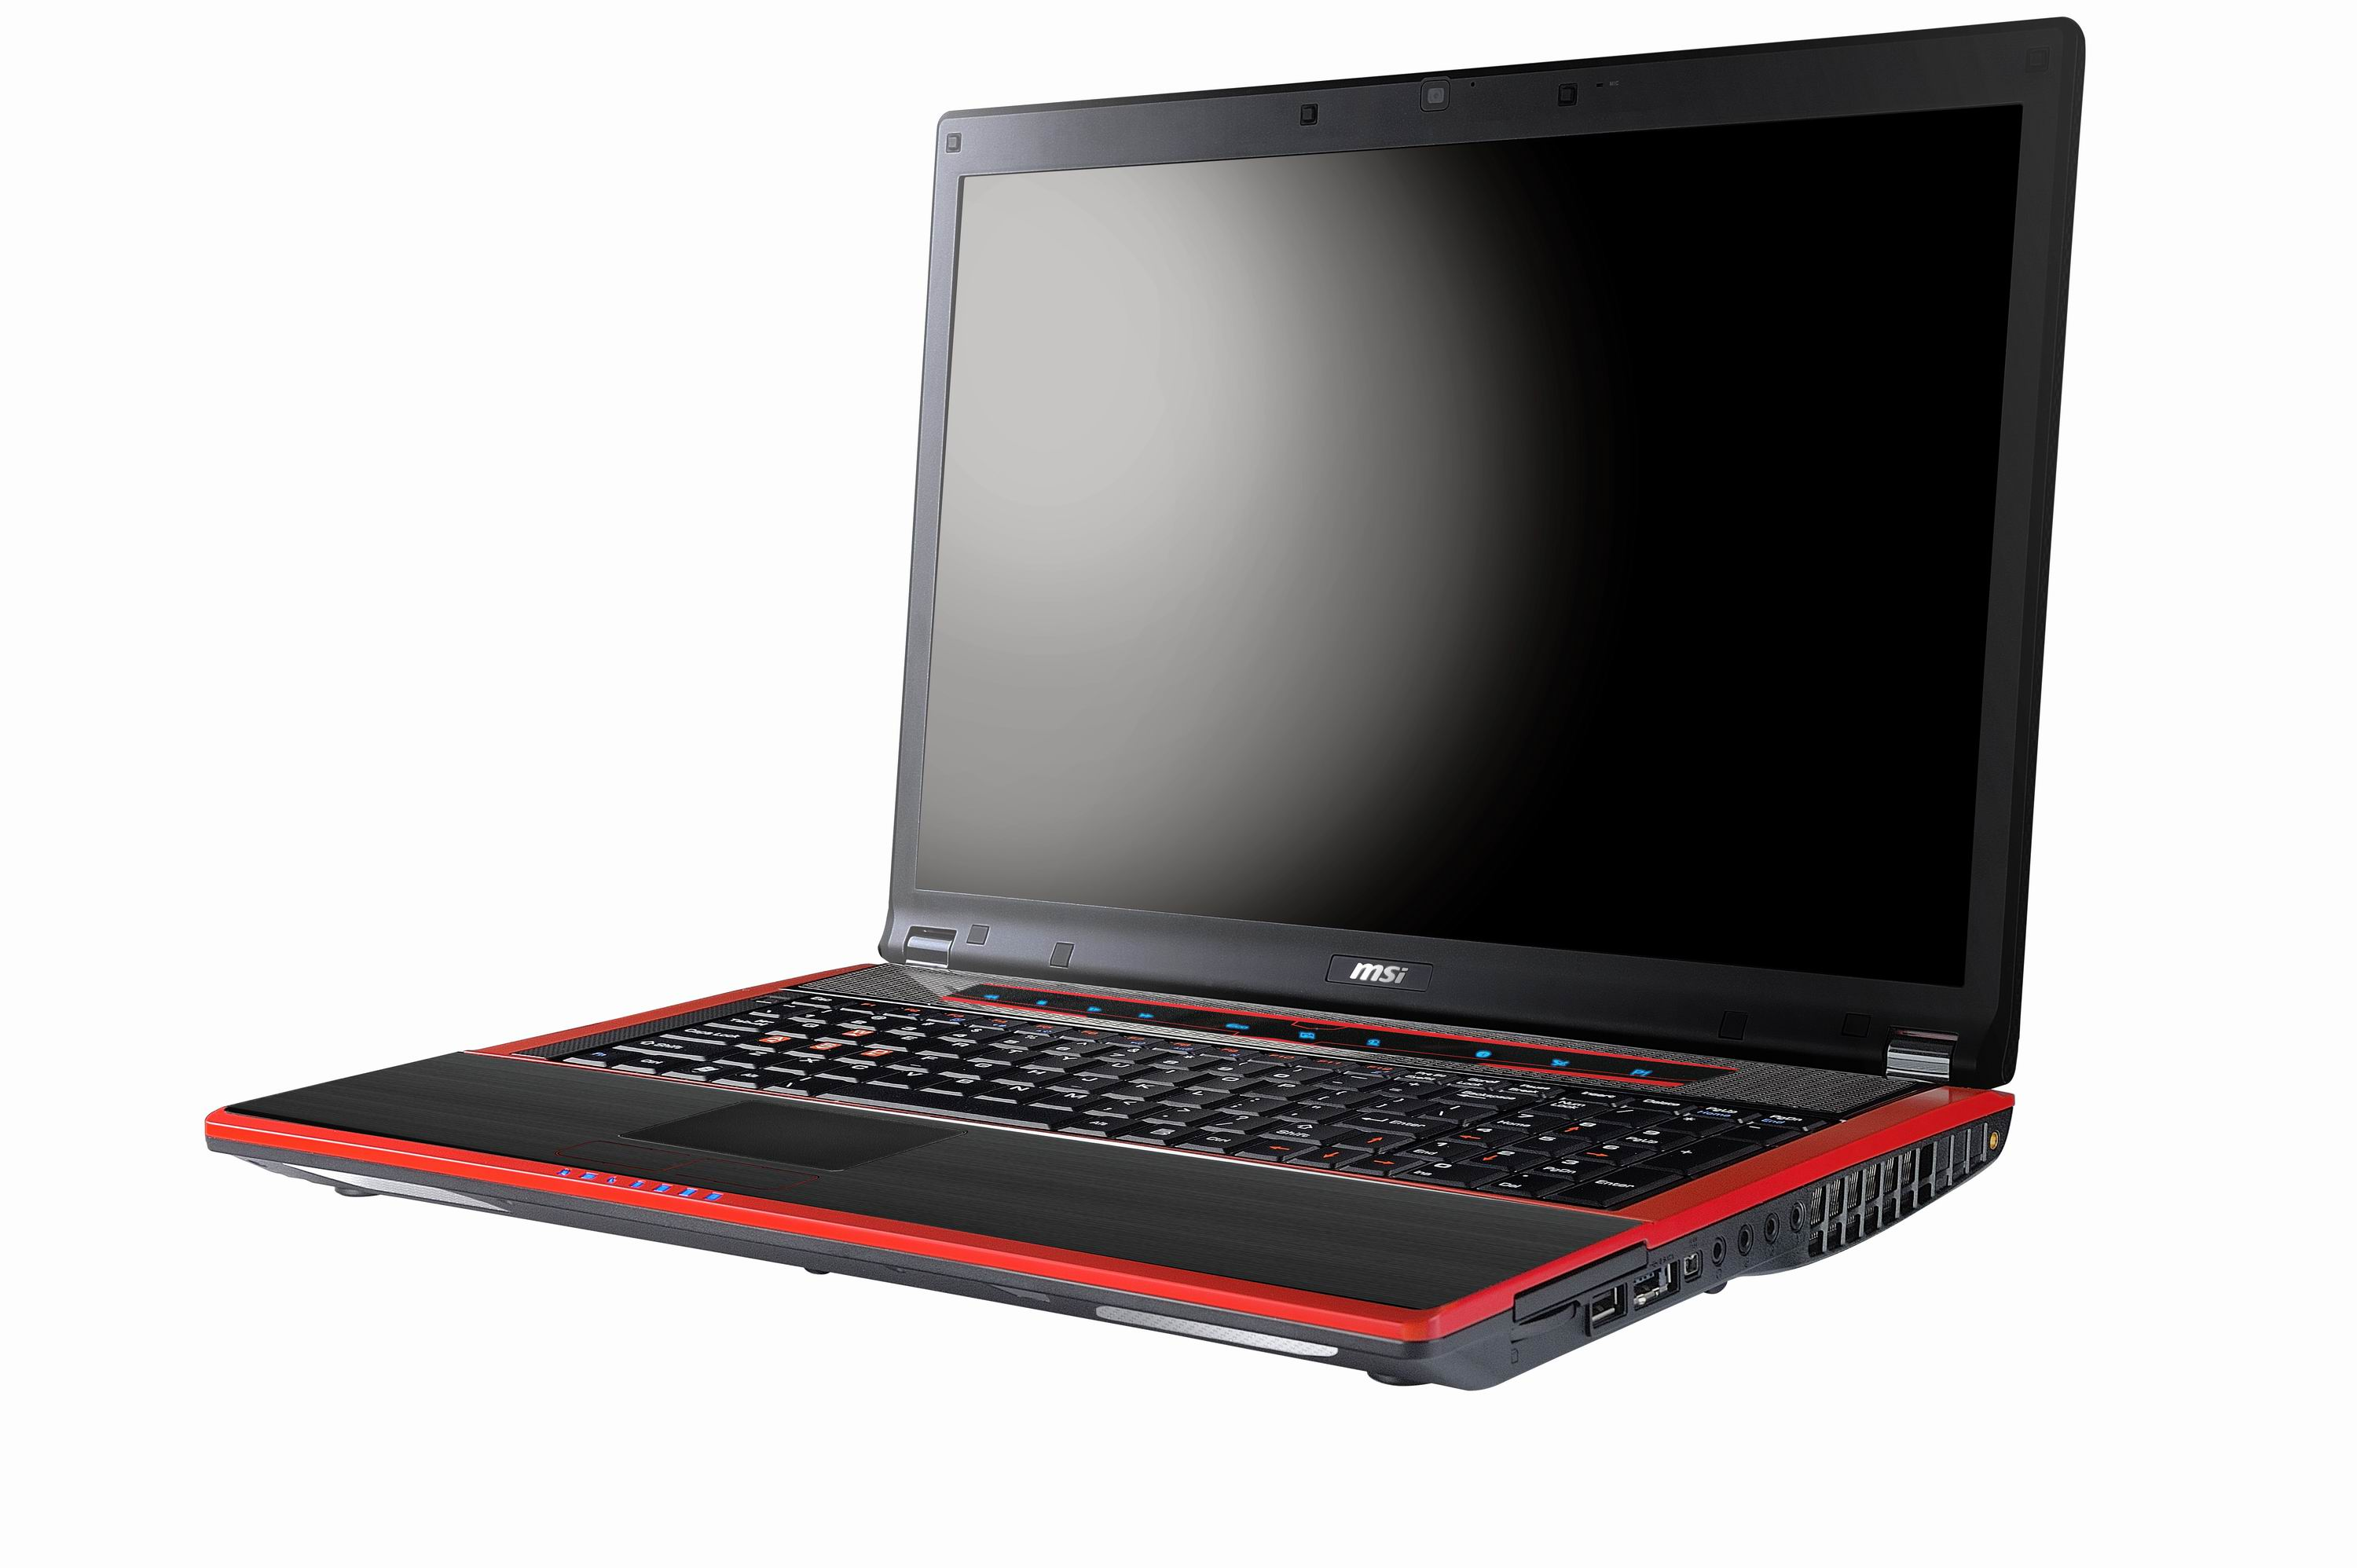 The Ultimate in Ground Shaking Performance Gaming Notebook